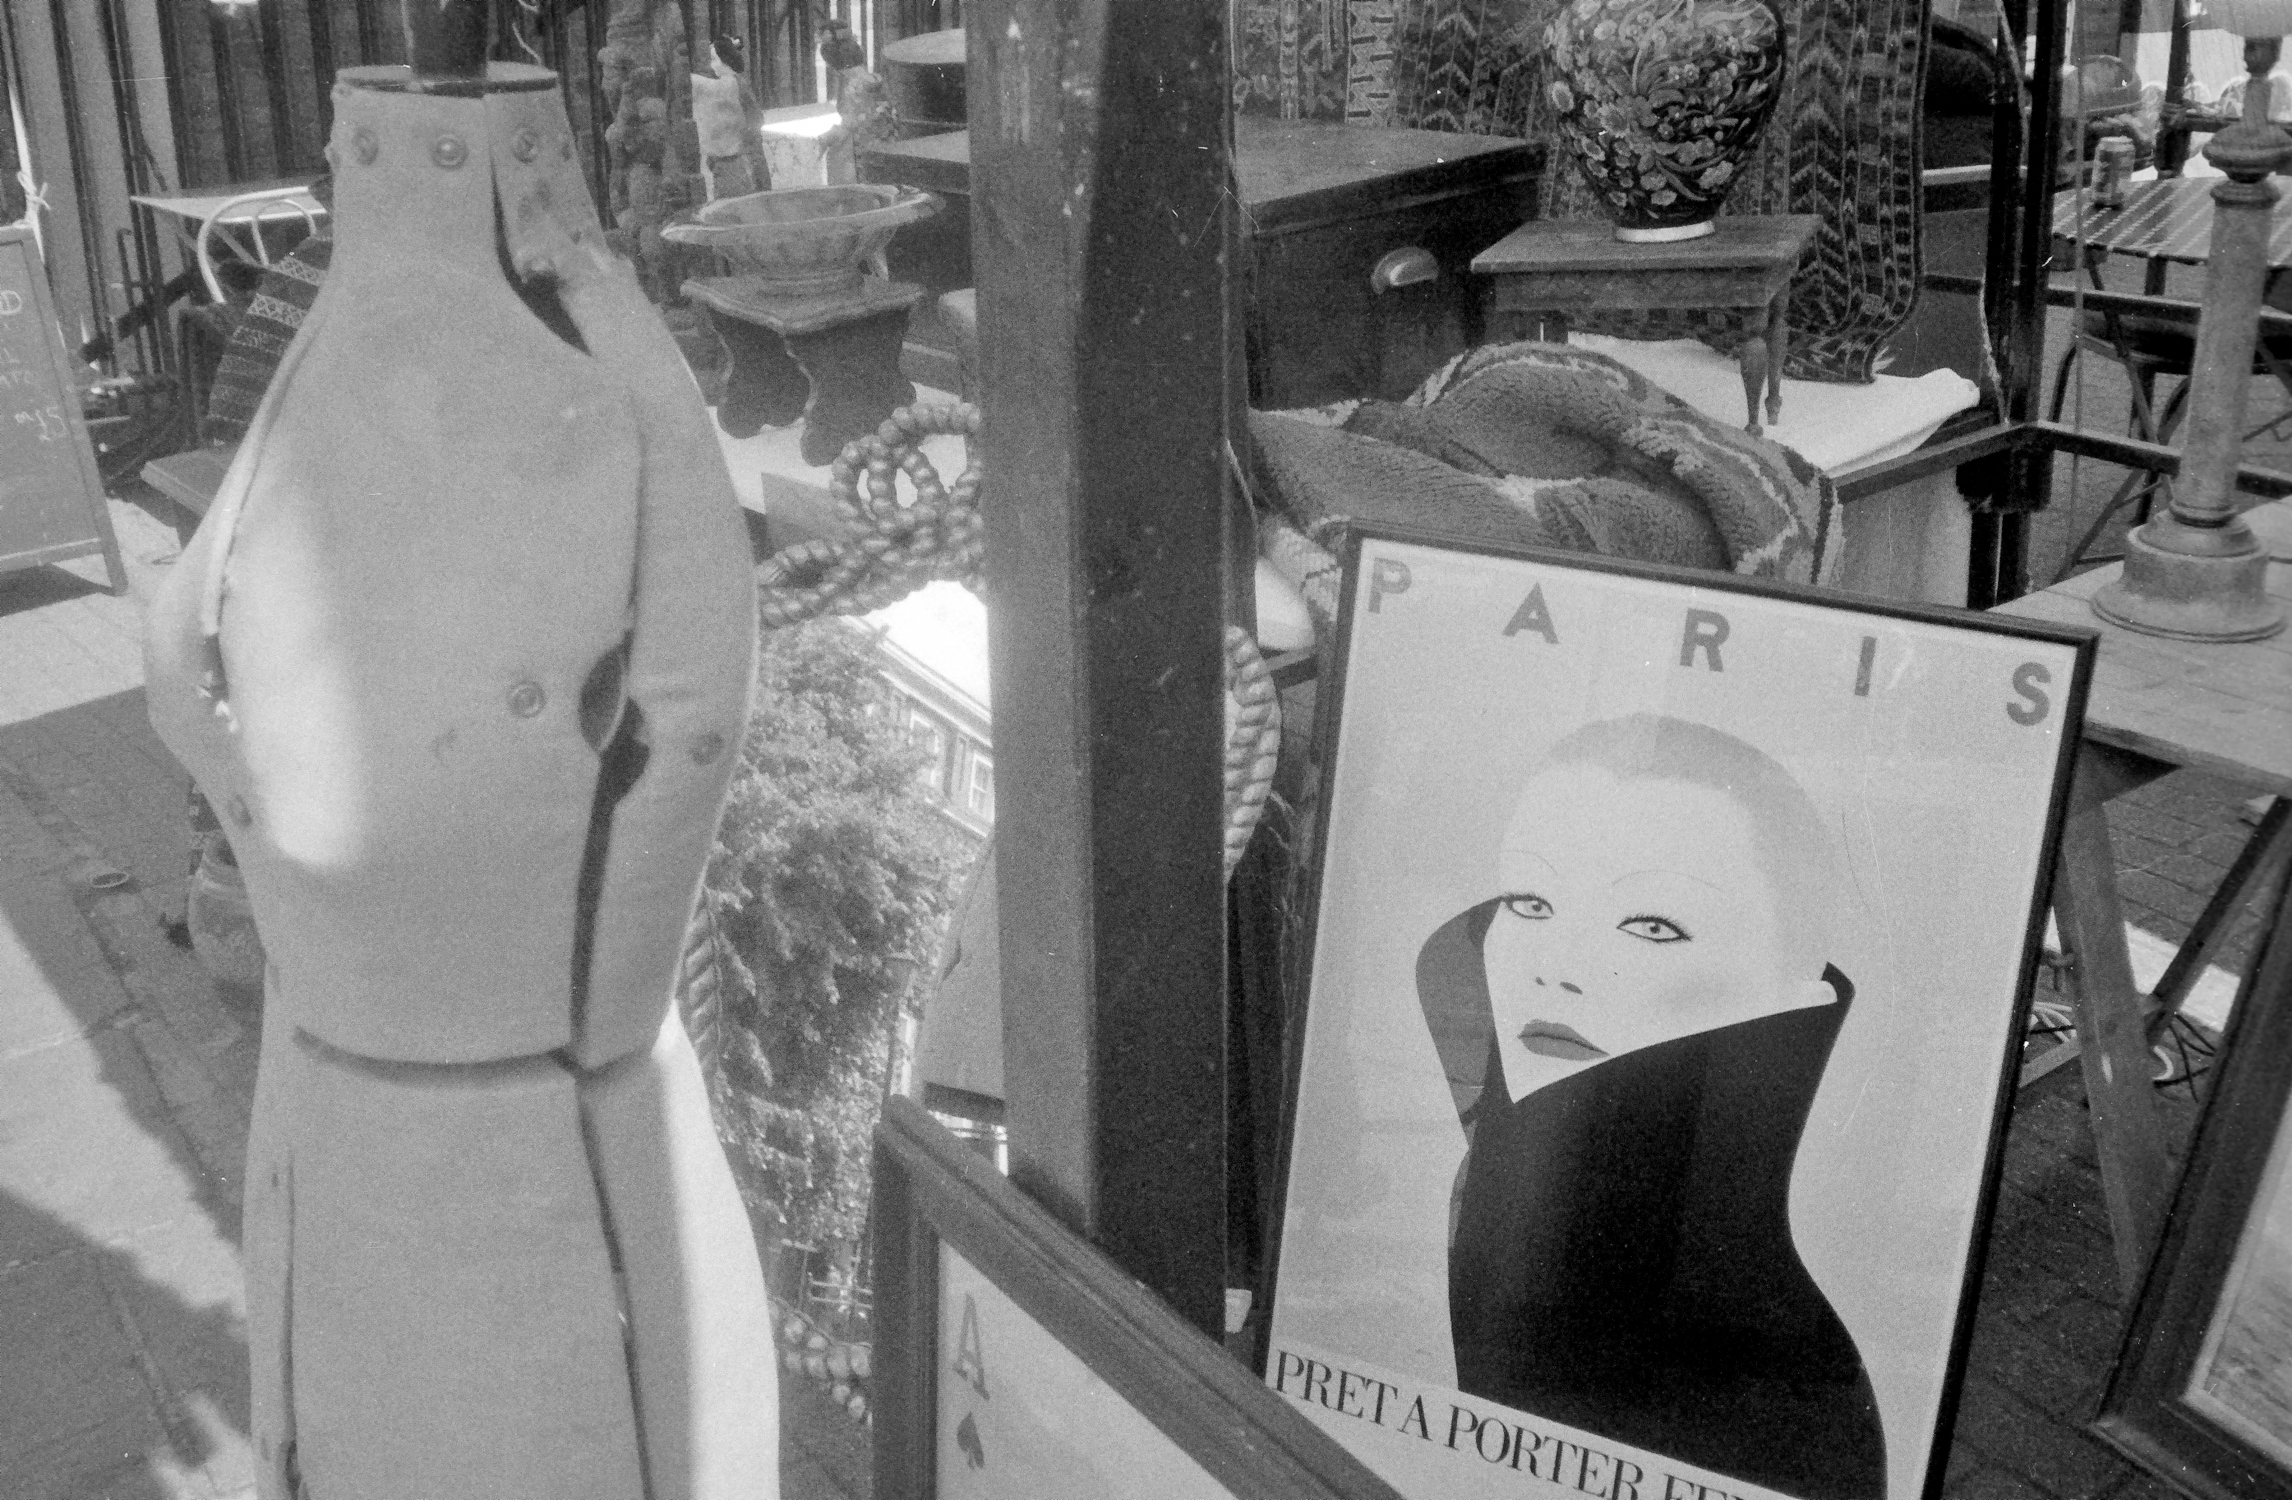 Items in flea market (Pic: Stephen Dowling)